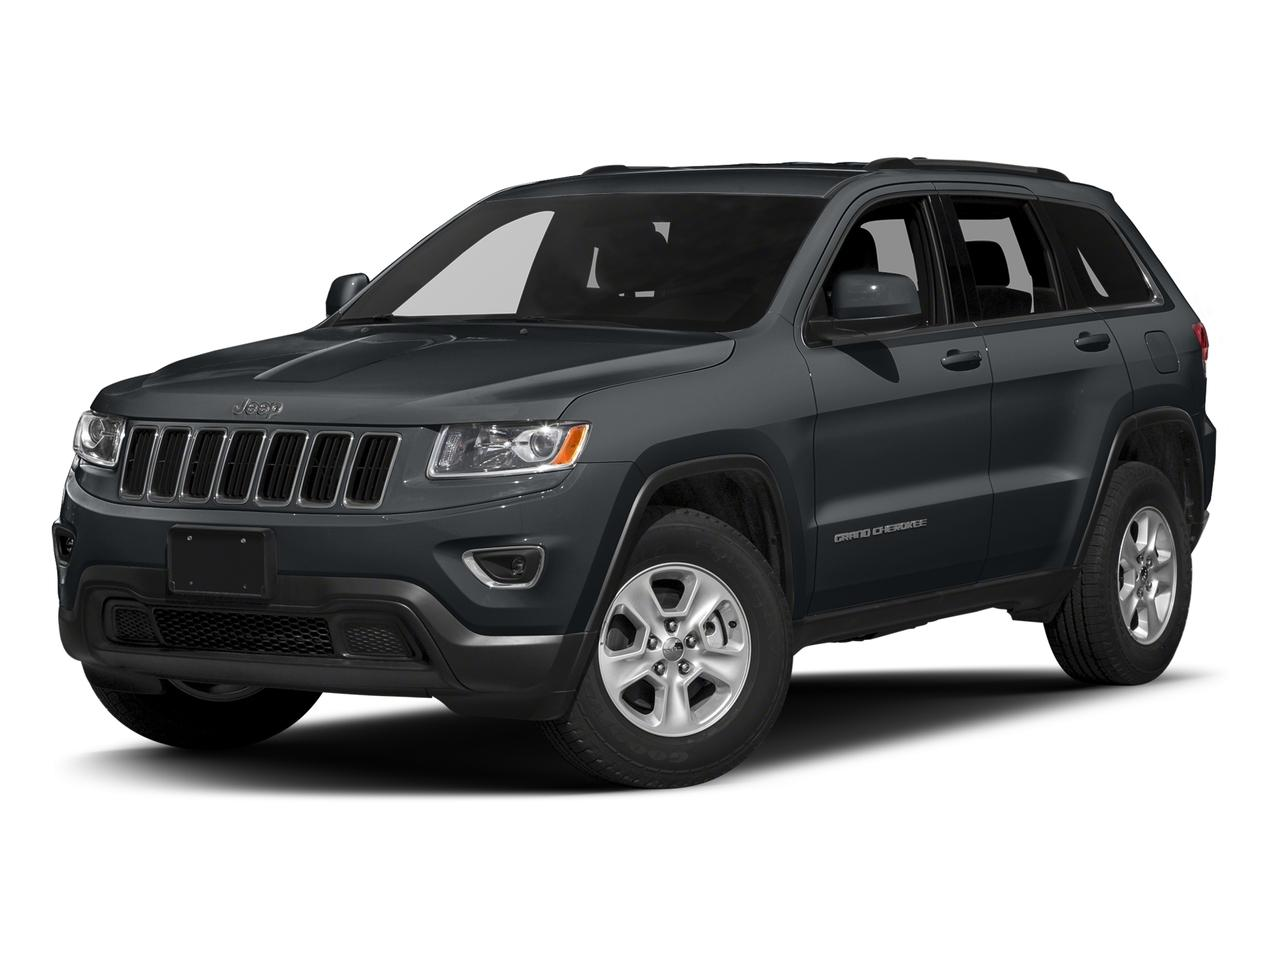 2016 Jeep Grand Cherokee Vehicle Photo in Lewisville, TX 75067